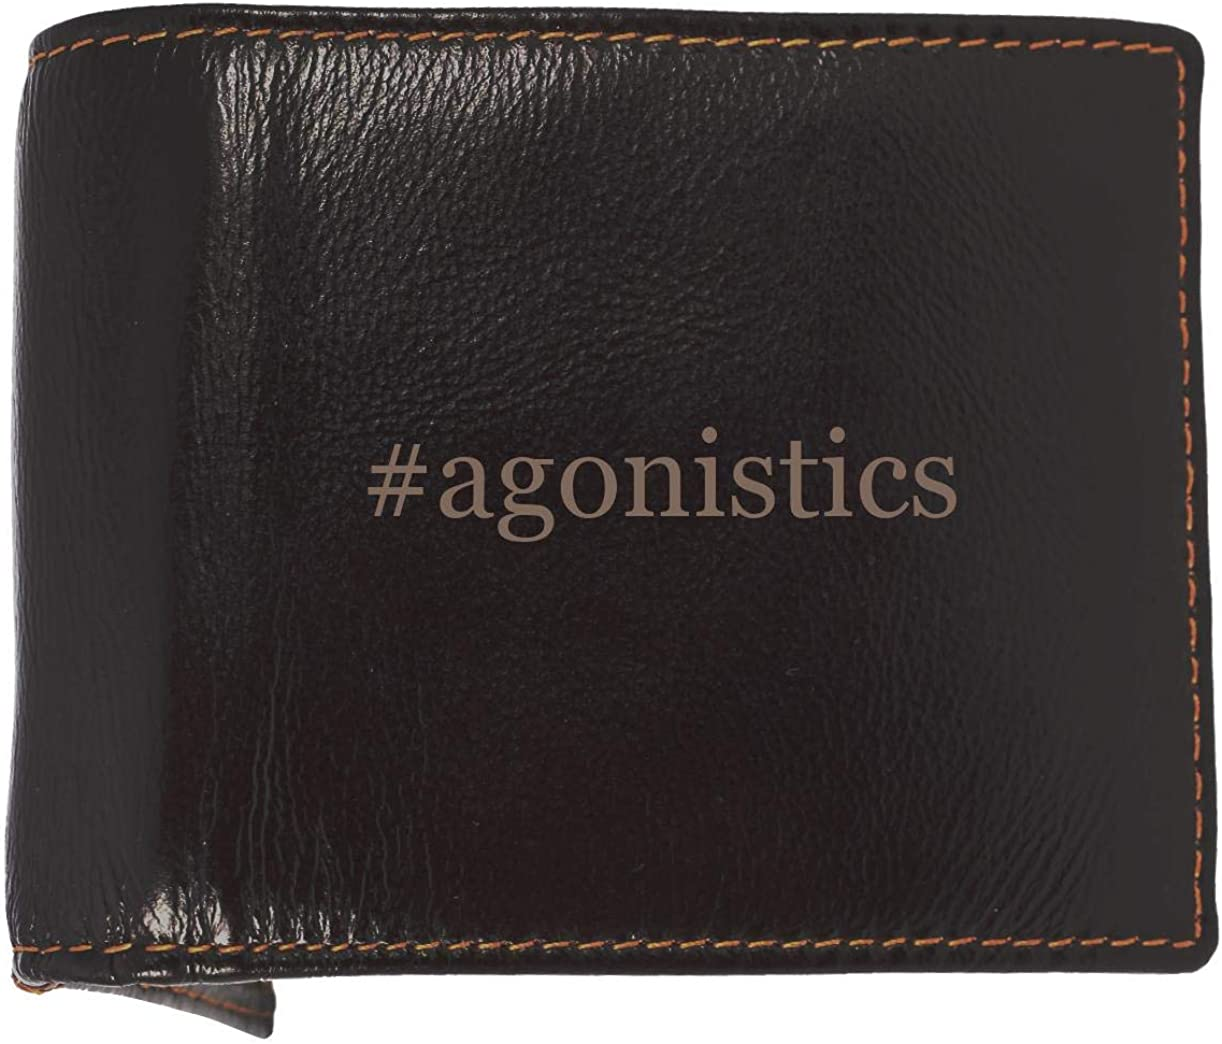 #agonistics - Soft Hashtag Cowhide Genuine Engraved Bifold Leather Wallet 61p7-rFxXiL